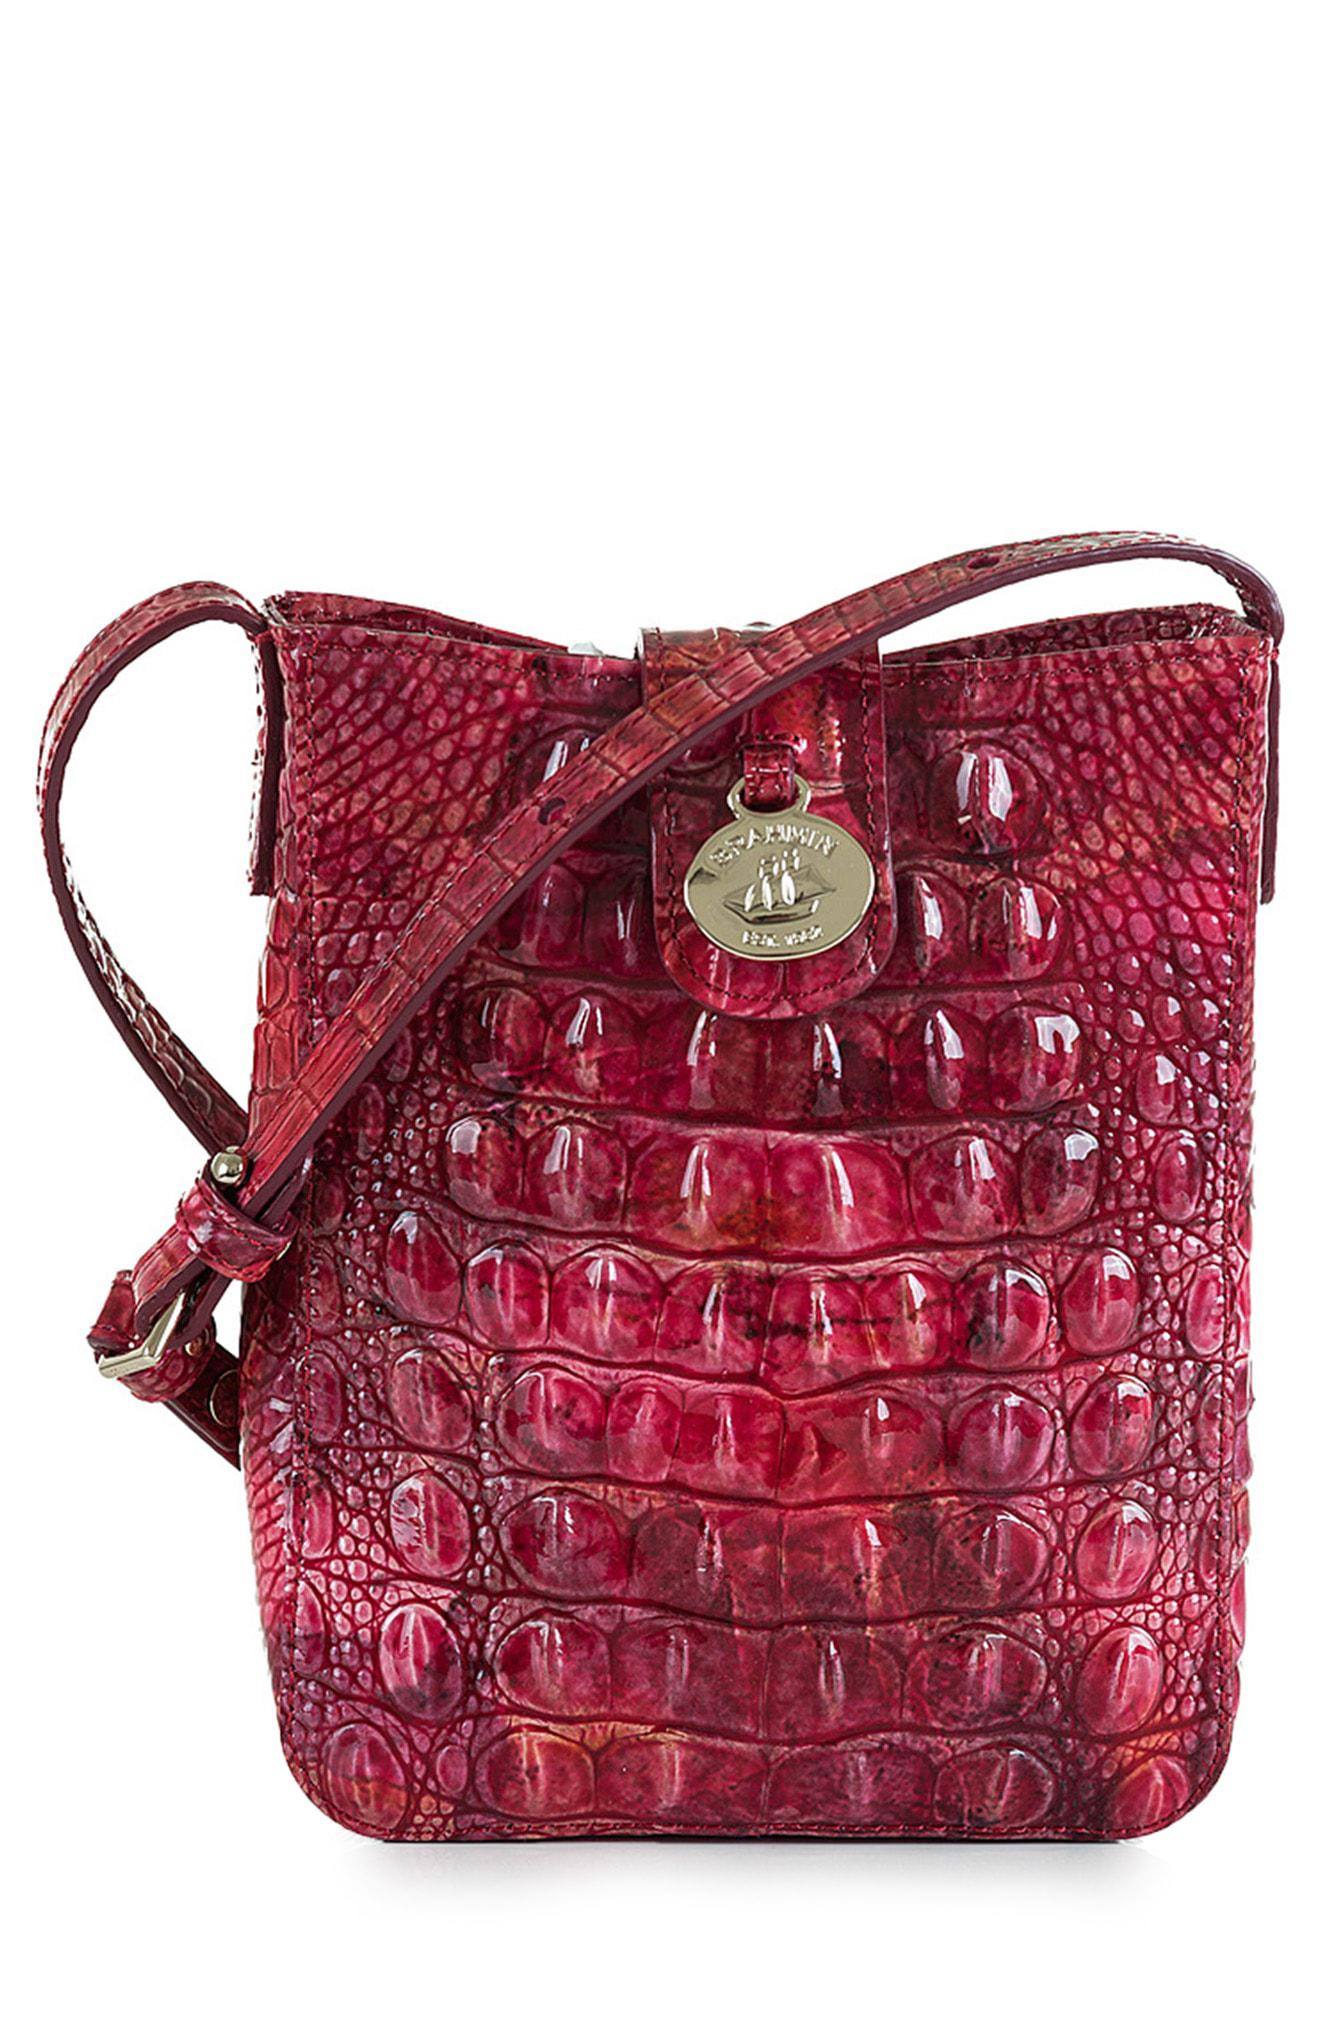 ac1e76b1b Lyst - Brahmin Marley Melbourne Embossed Leather Crossbody in Red